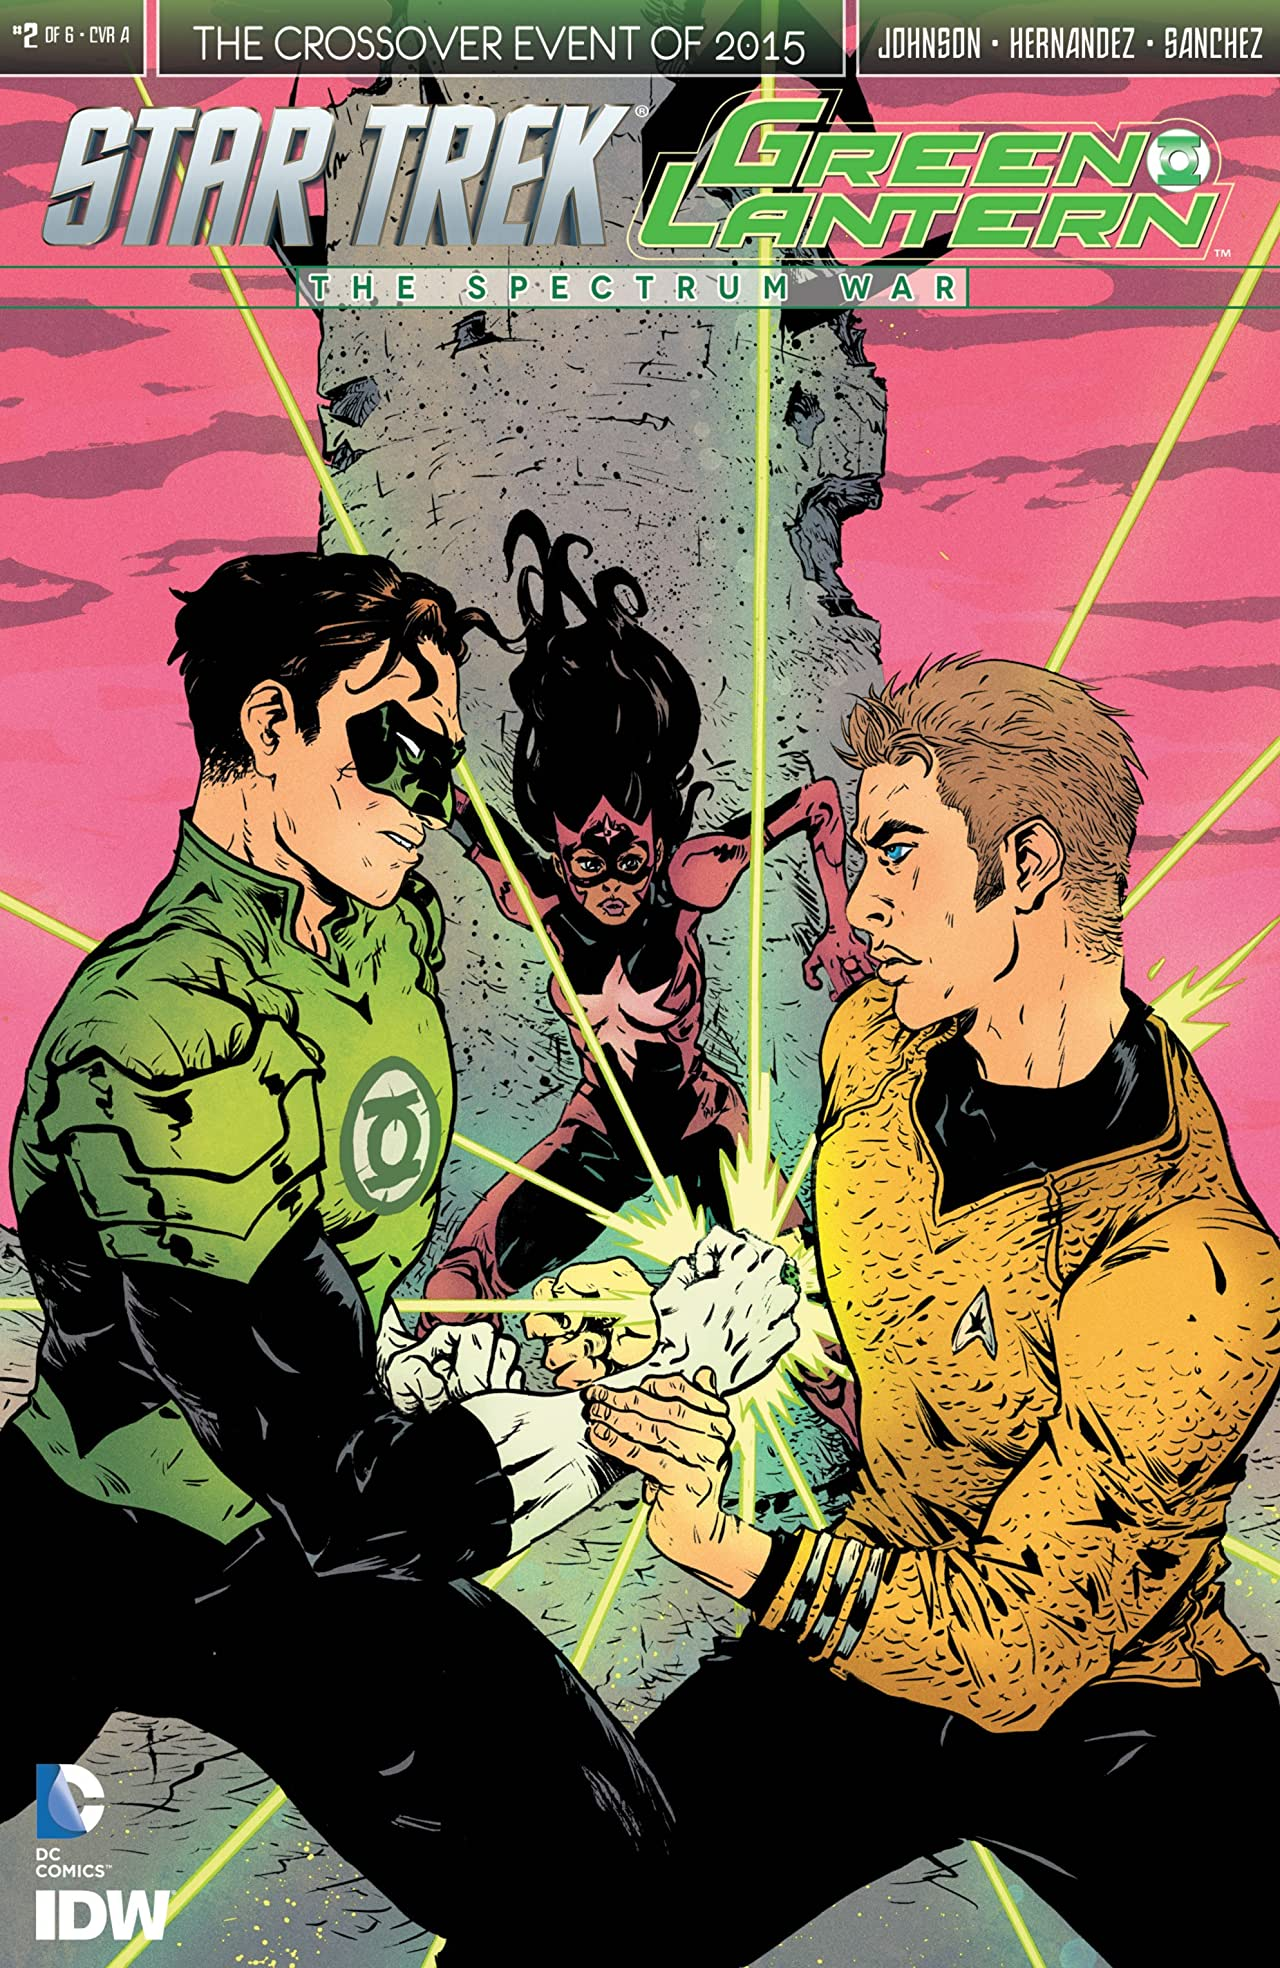 Star Trek/Green Lantern #2 (of 6)